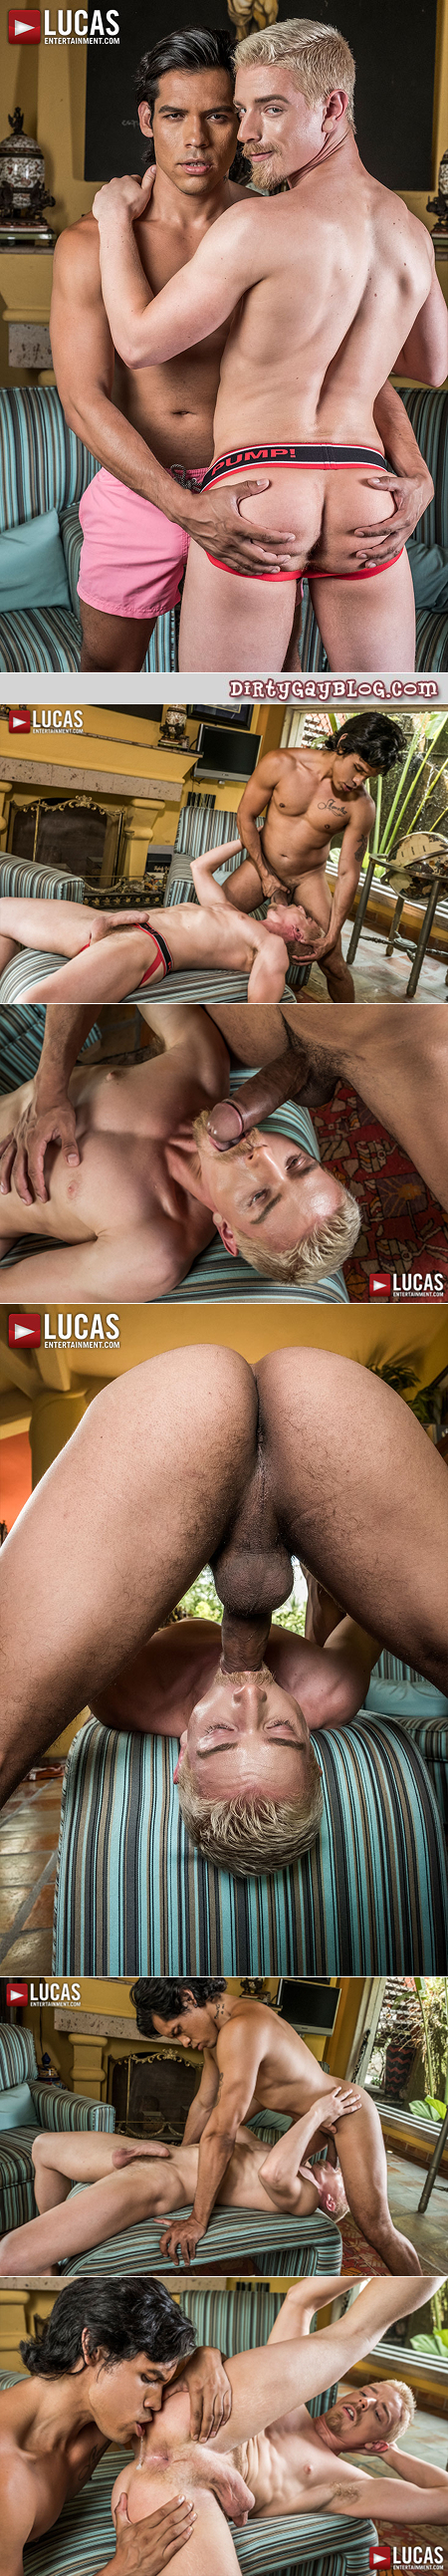 Blonde power bottom sucking big Latin dick and being fucked bareback.